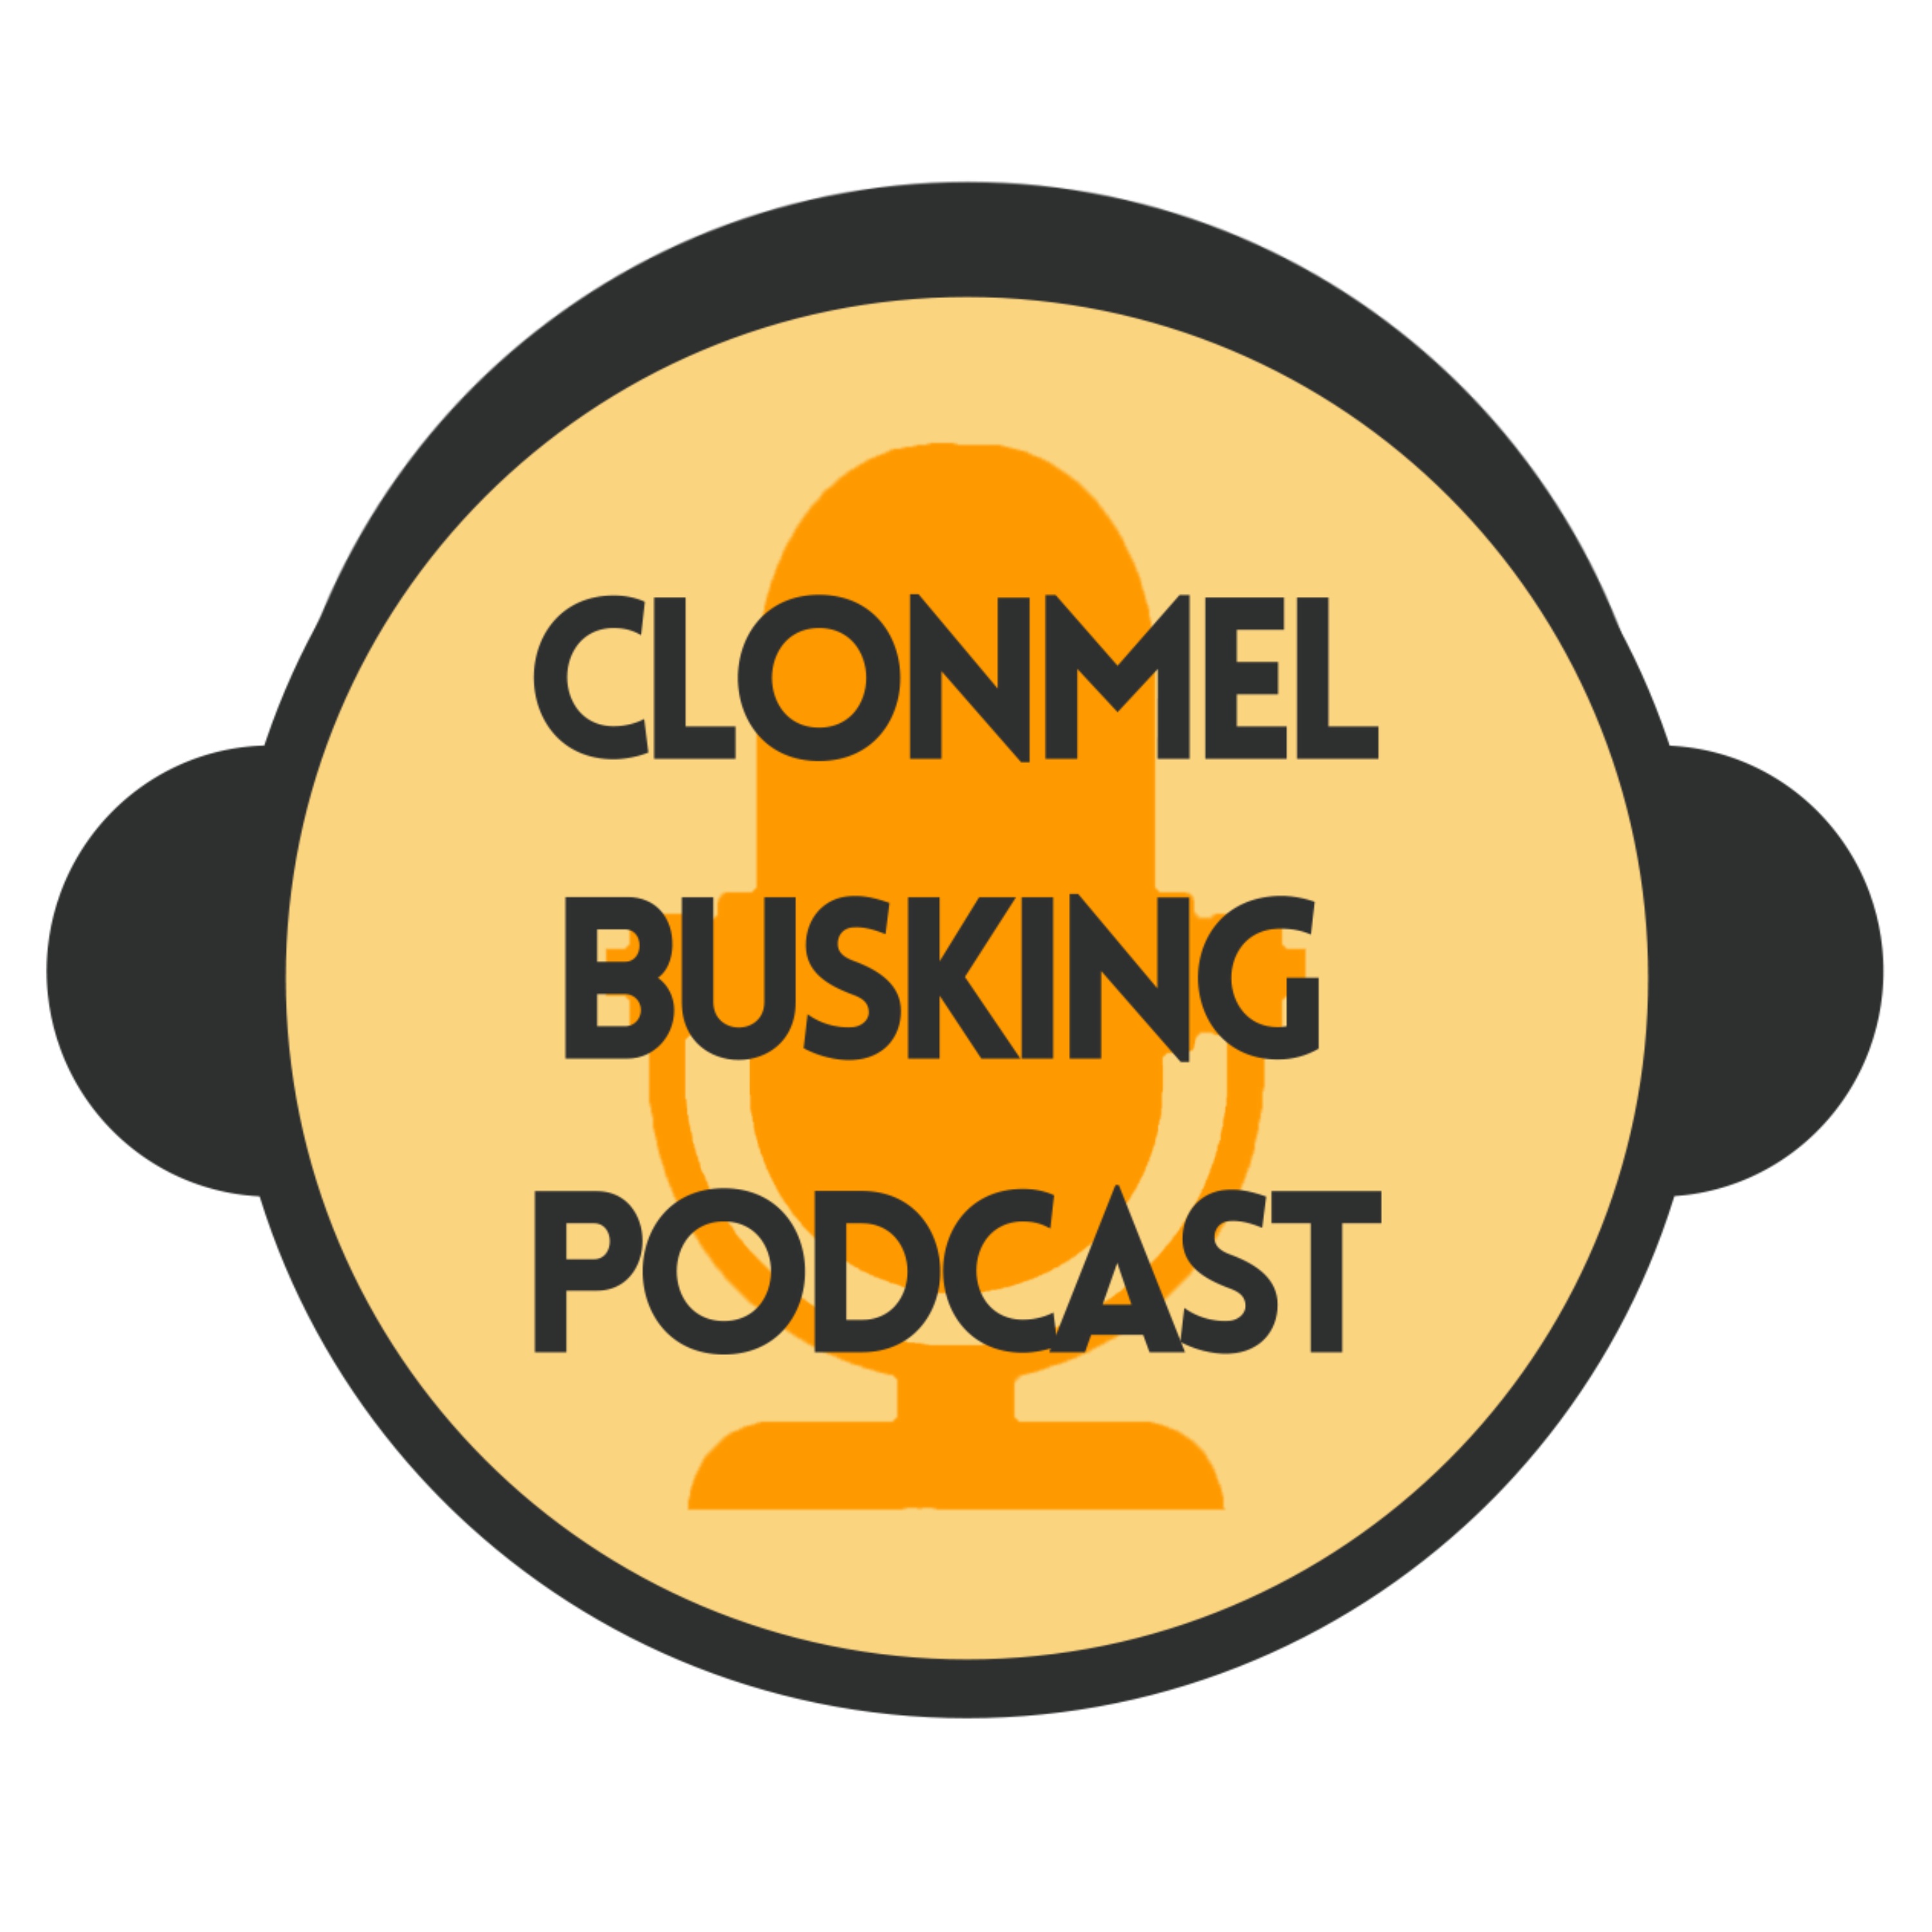 Busking Podcast